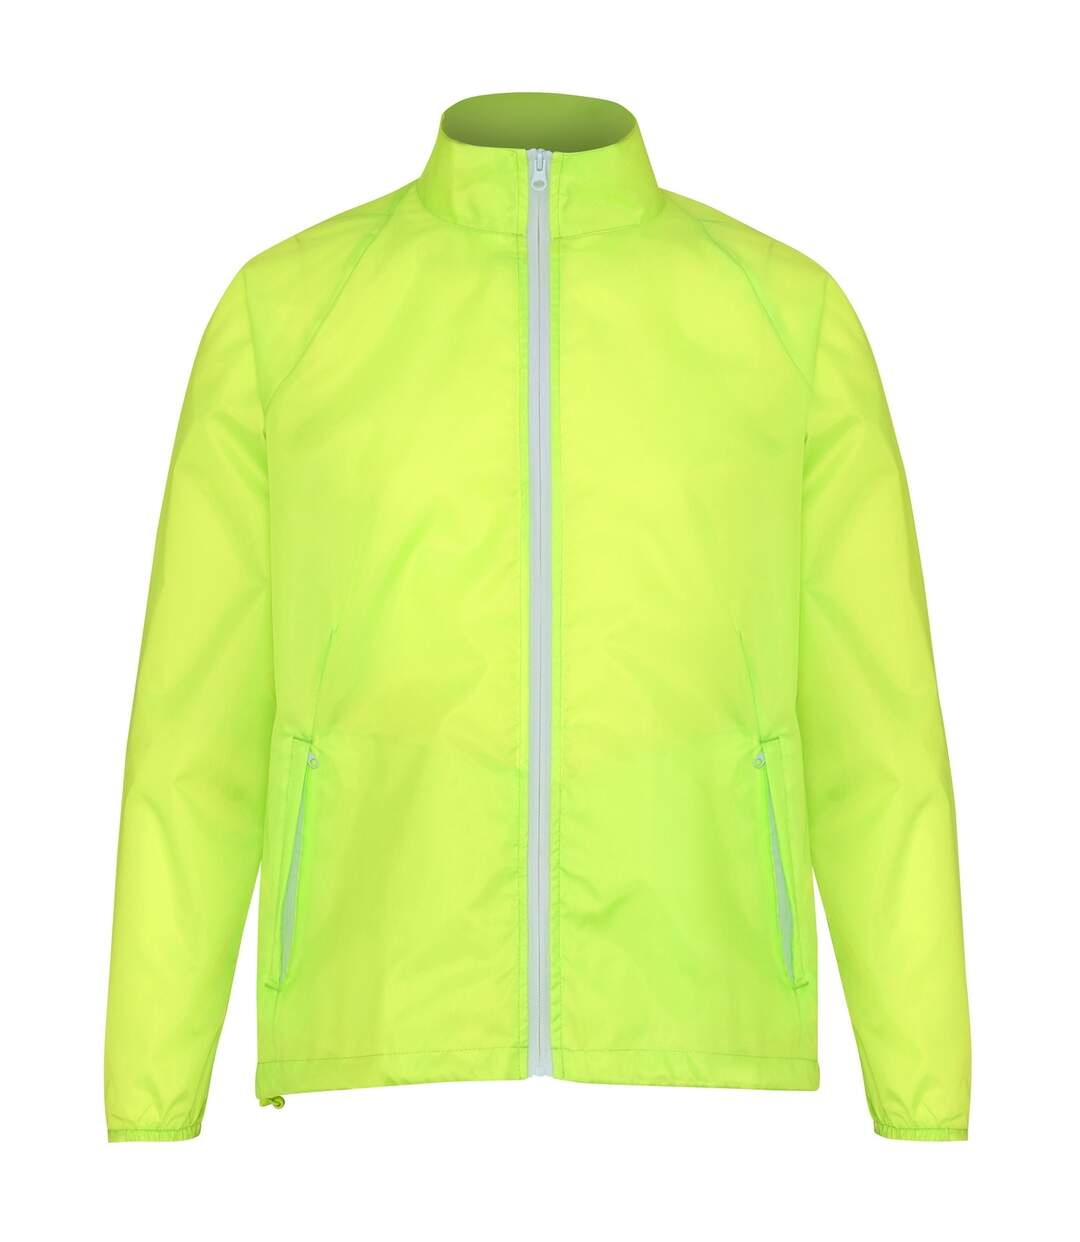 2786 Mens Contrast Lightweight Windcheater Shower Proof Jacket (Yellow/ White) - UTRW2501